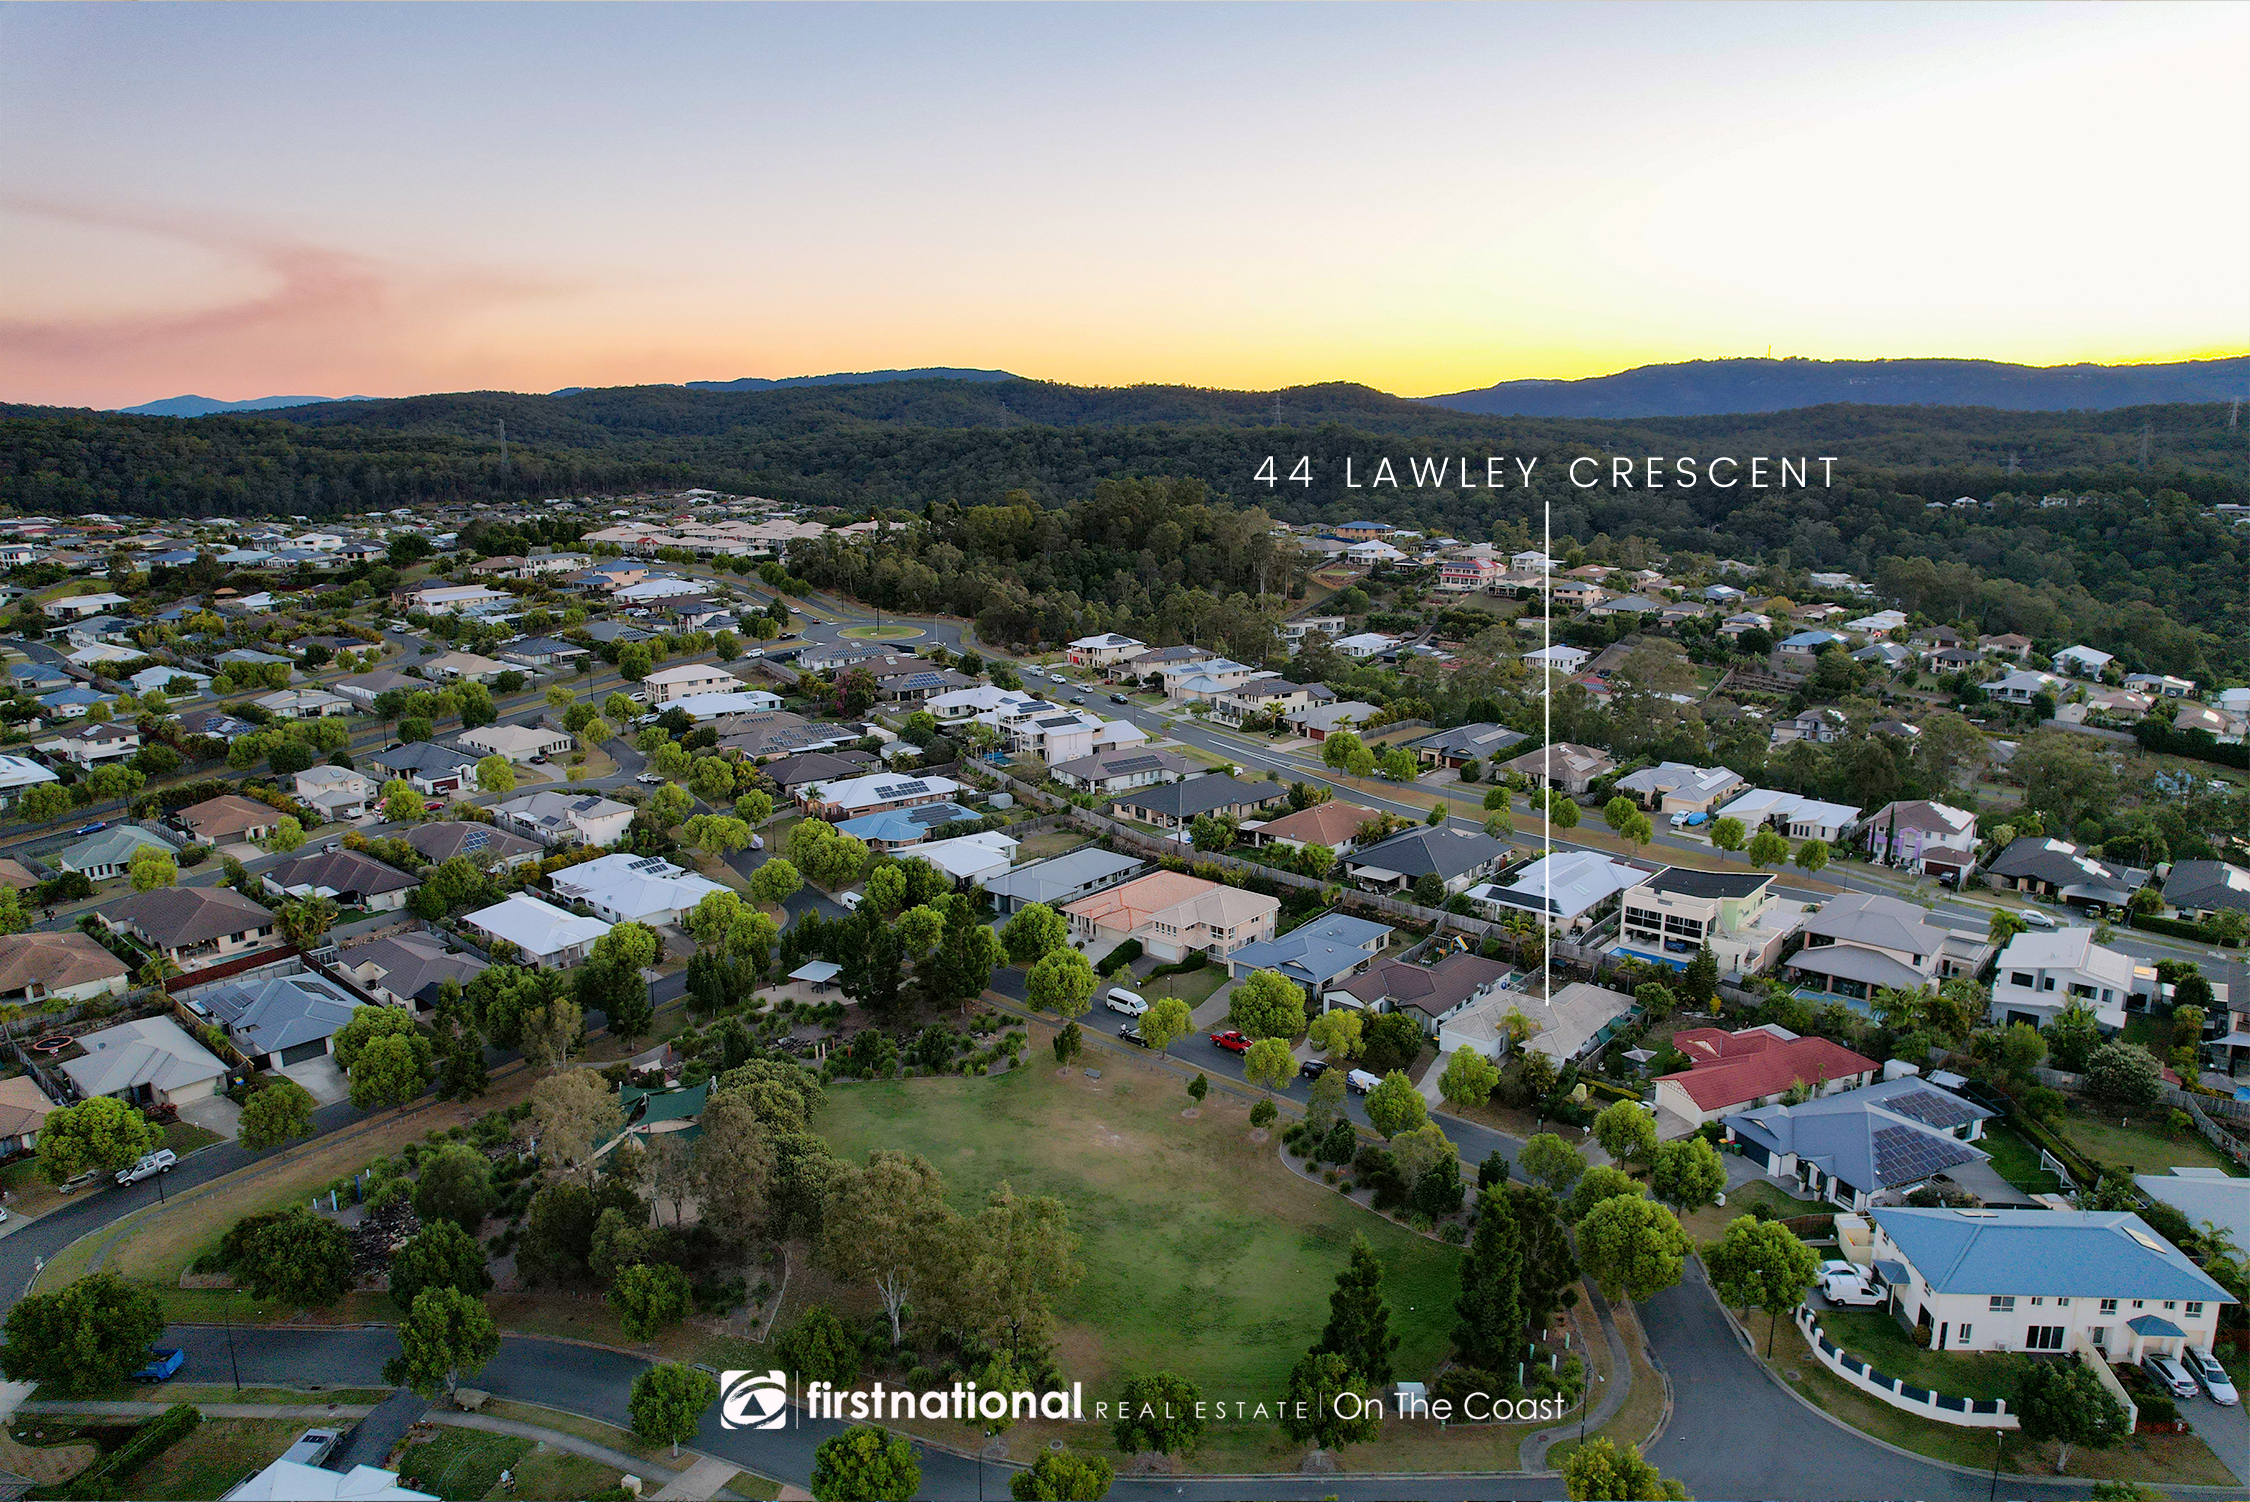 44 Lawley Crescent, Pacific Pines, QLD 4211